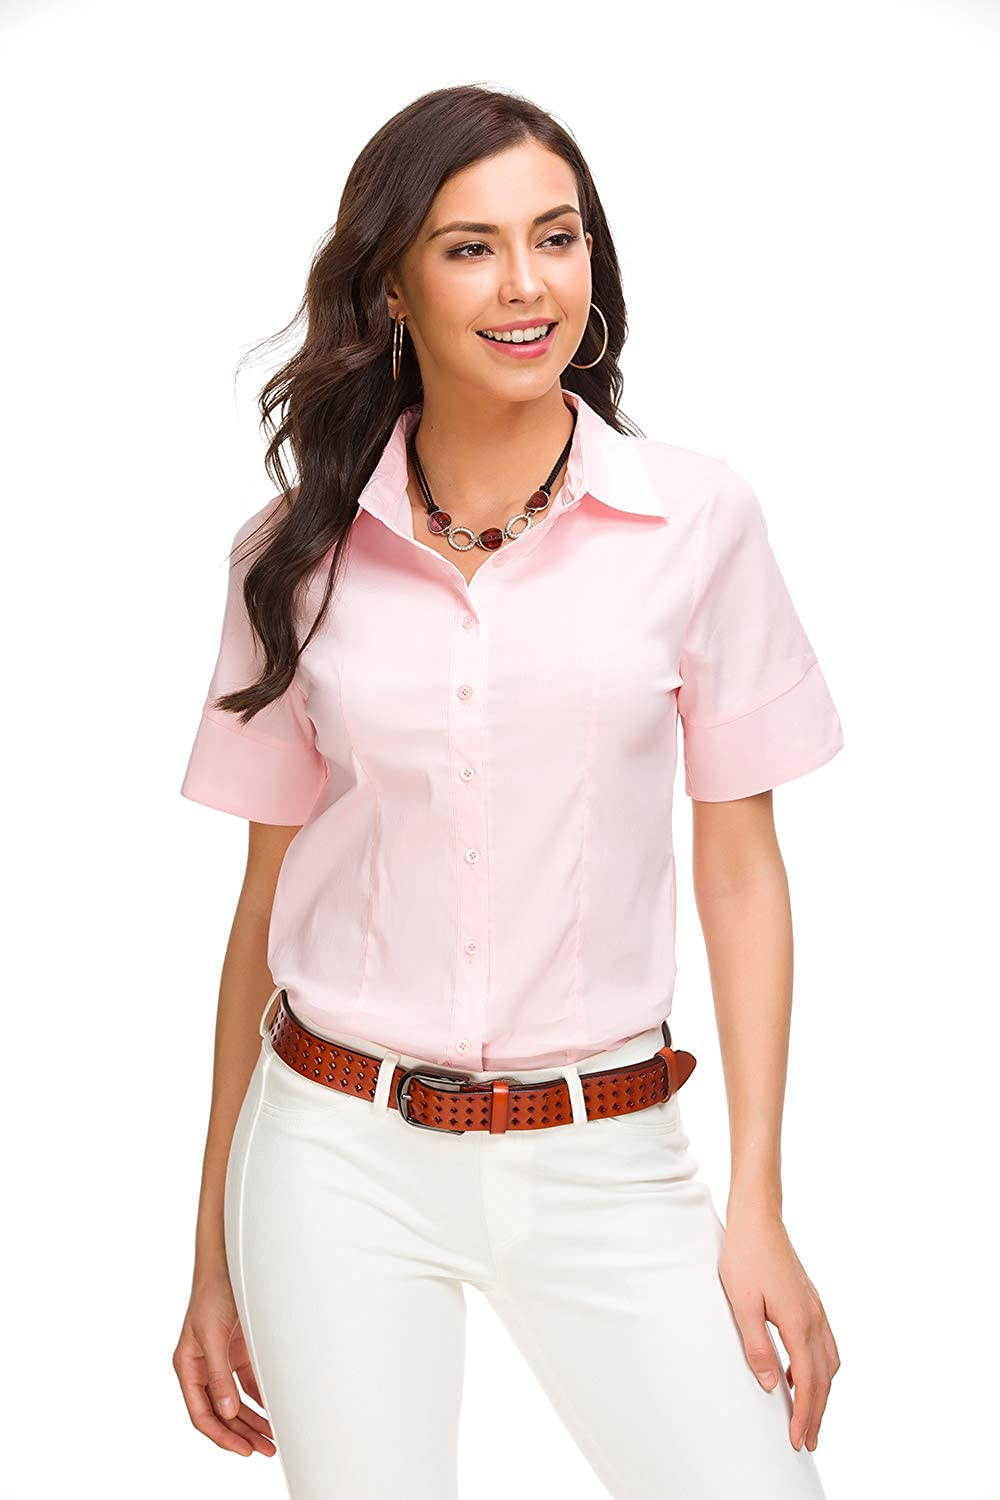 Women Casual Short Sleeves Button Down Lapel Top Ladies Office Work Shirt Blouse